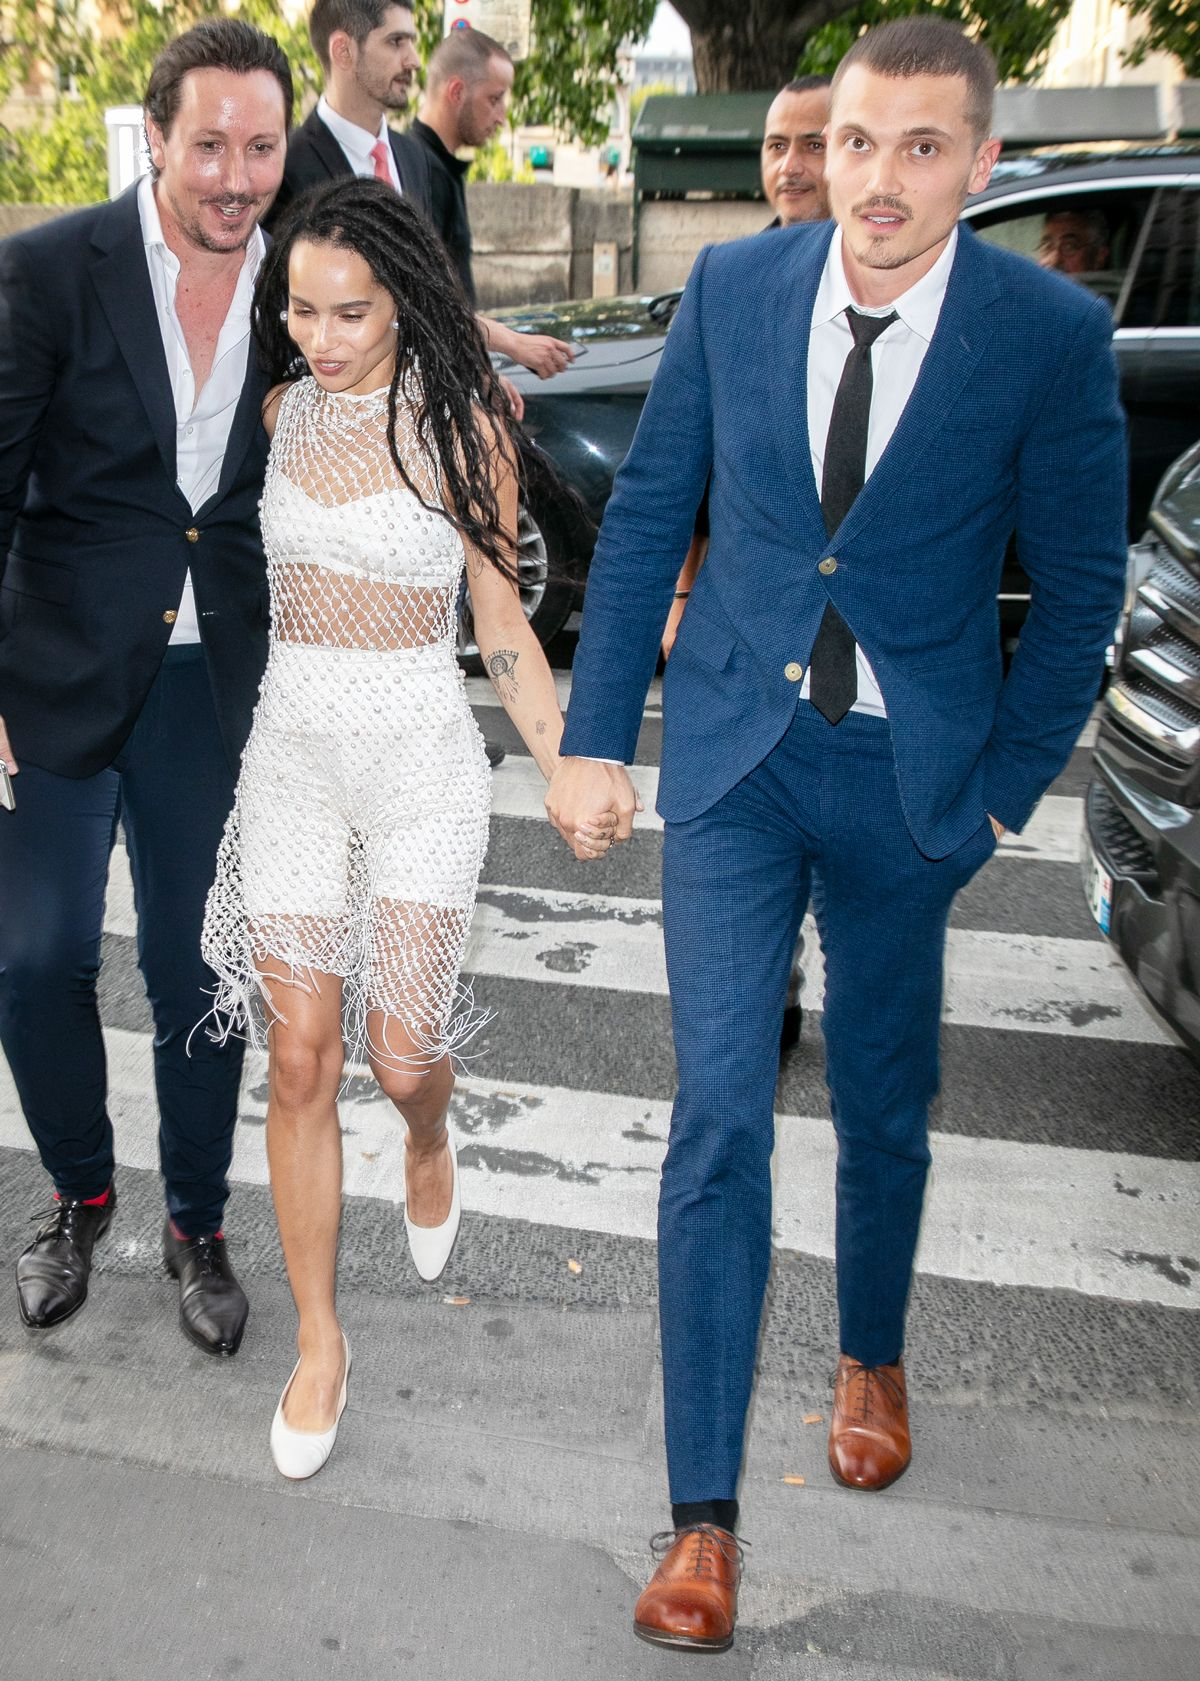 Zoe Kravitz Wore a Bra and Bike Shorts to Her Wedding Rehearsal Dinner in Paris